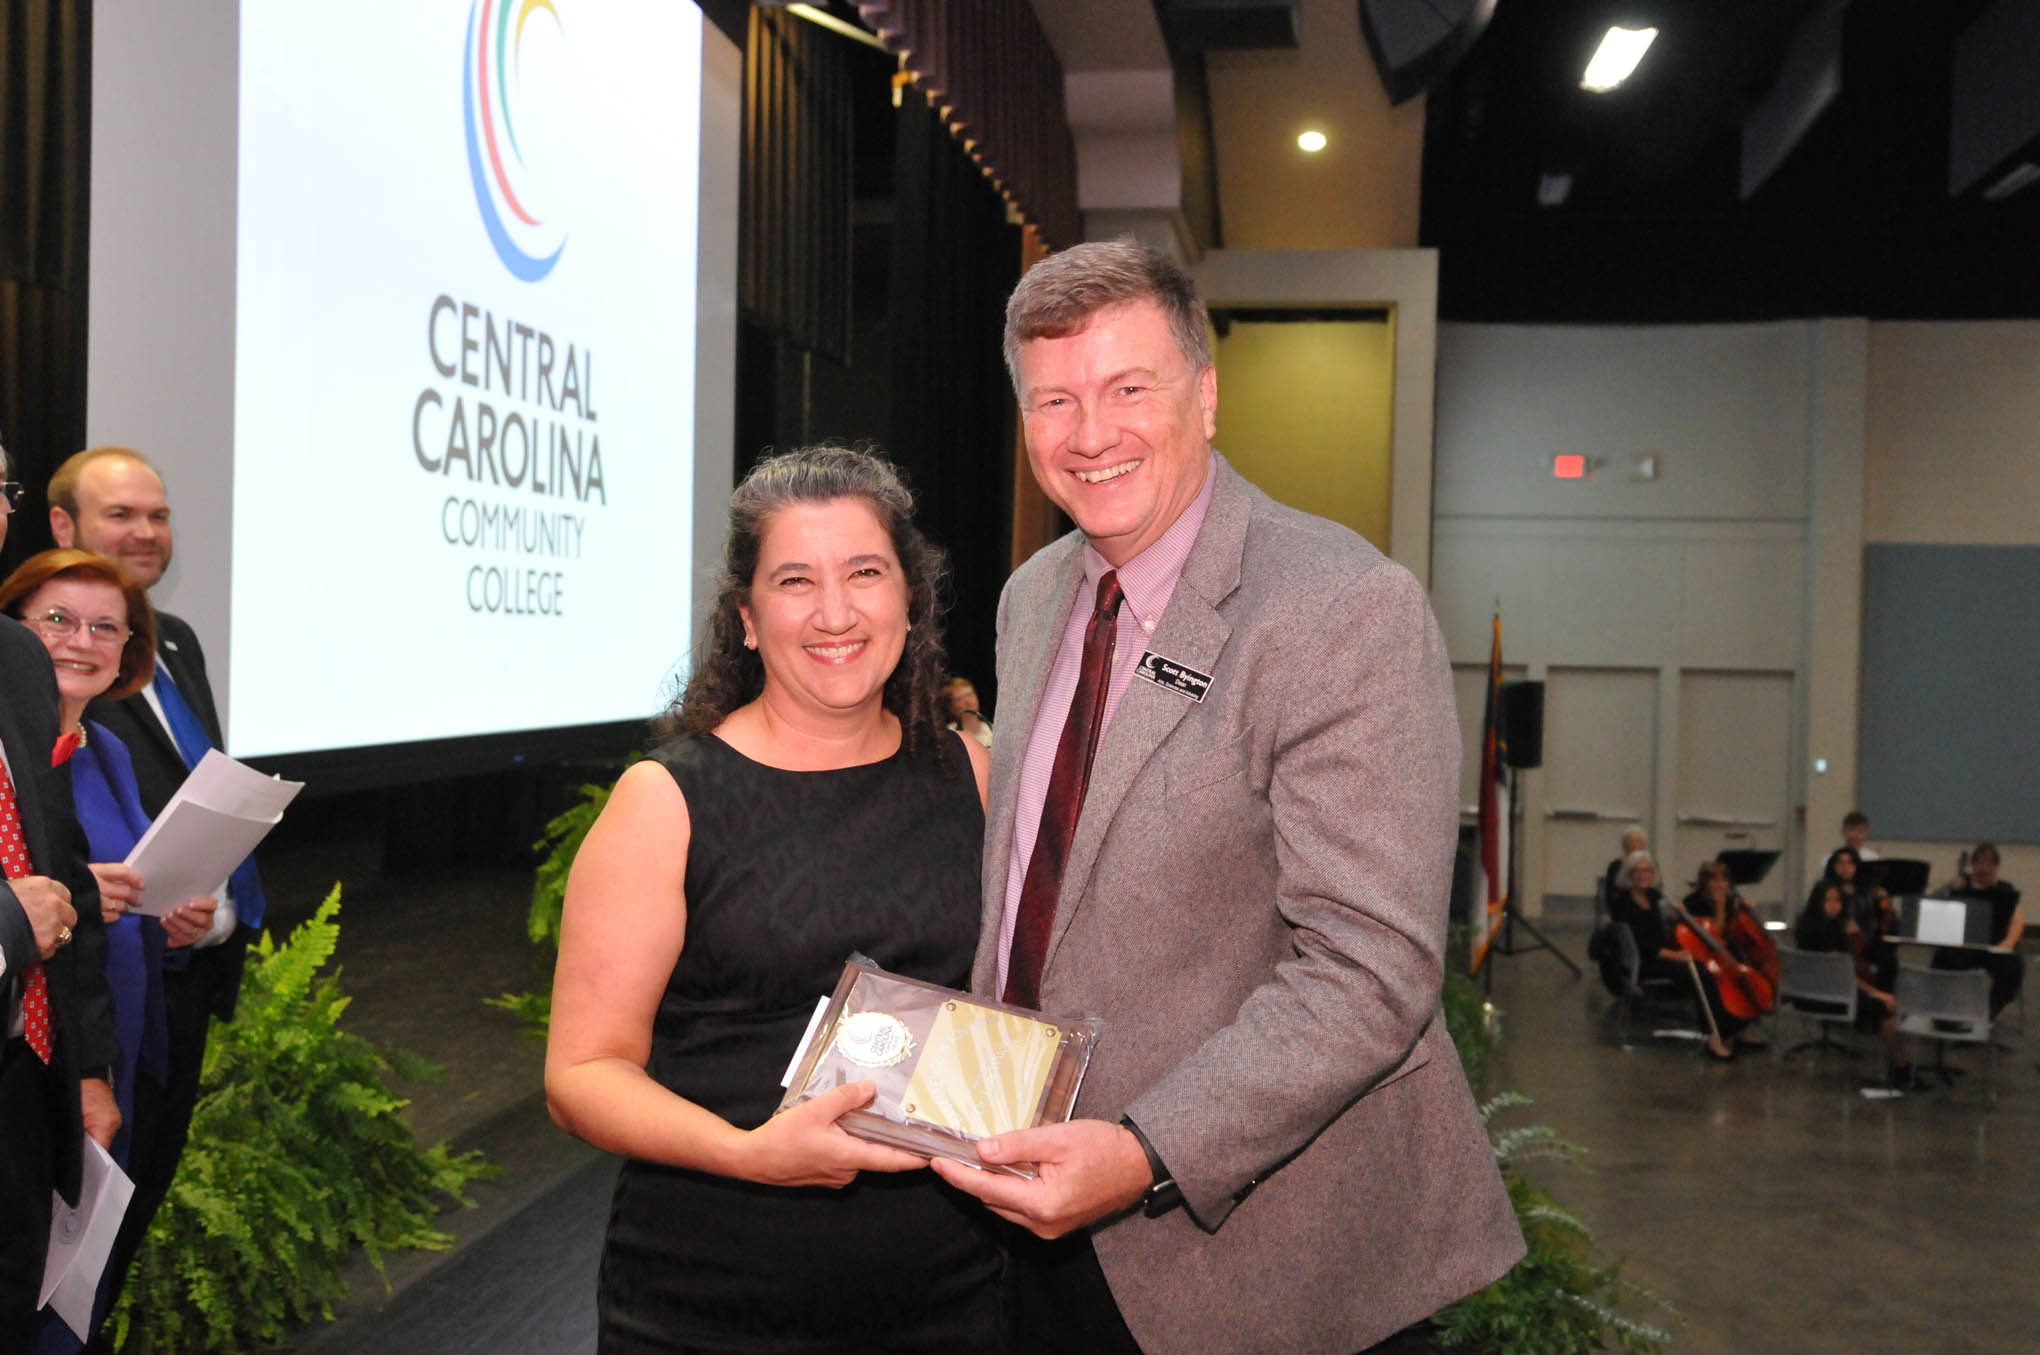 Click to enlarge,  Dr. Lora Witcher (left) receives the Central Carolina Community College Advisor of the Year award from Scott Byington (right), CCCC Dean of Arts, Sciences and Advising, during the Convocation and Installation of Dr. Lisa M. Chapman as Sixth President of CCCC on Sept. 26.